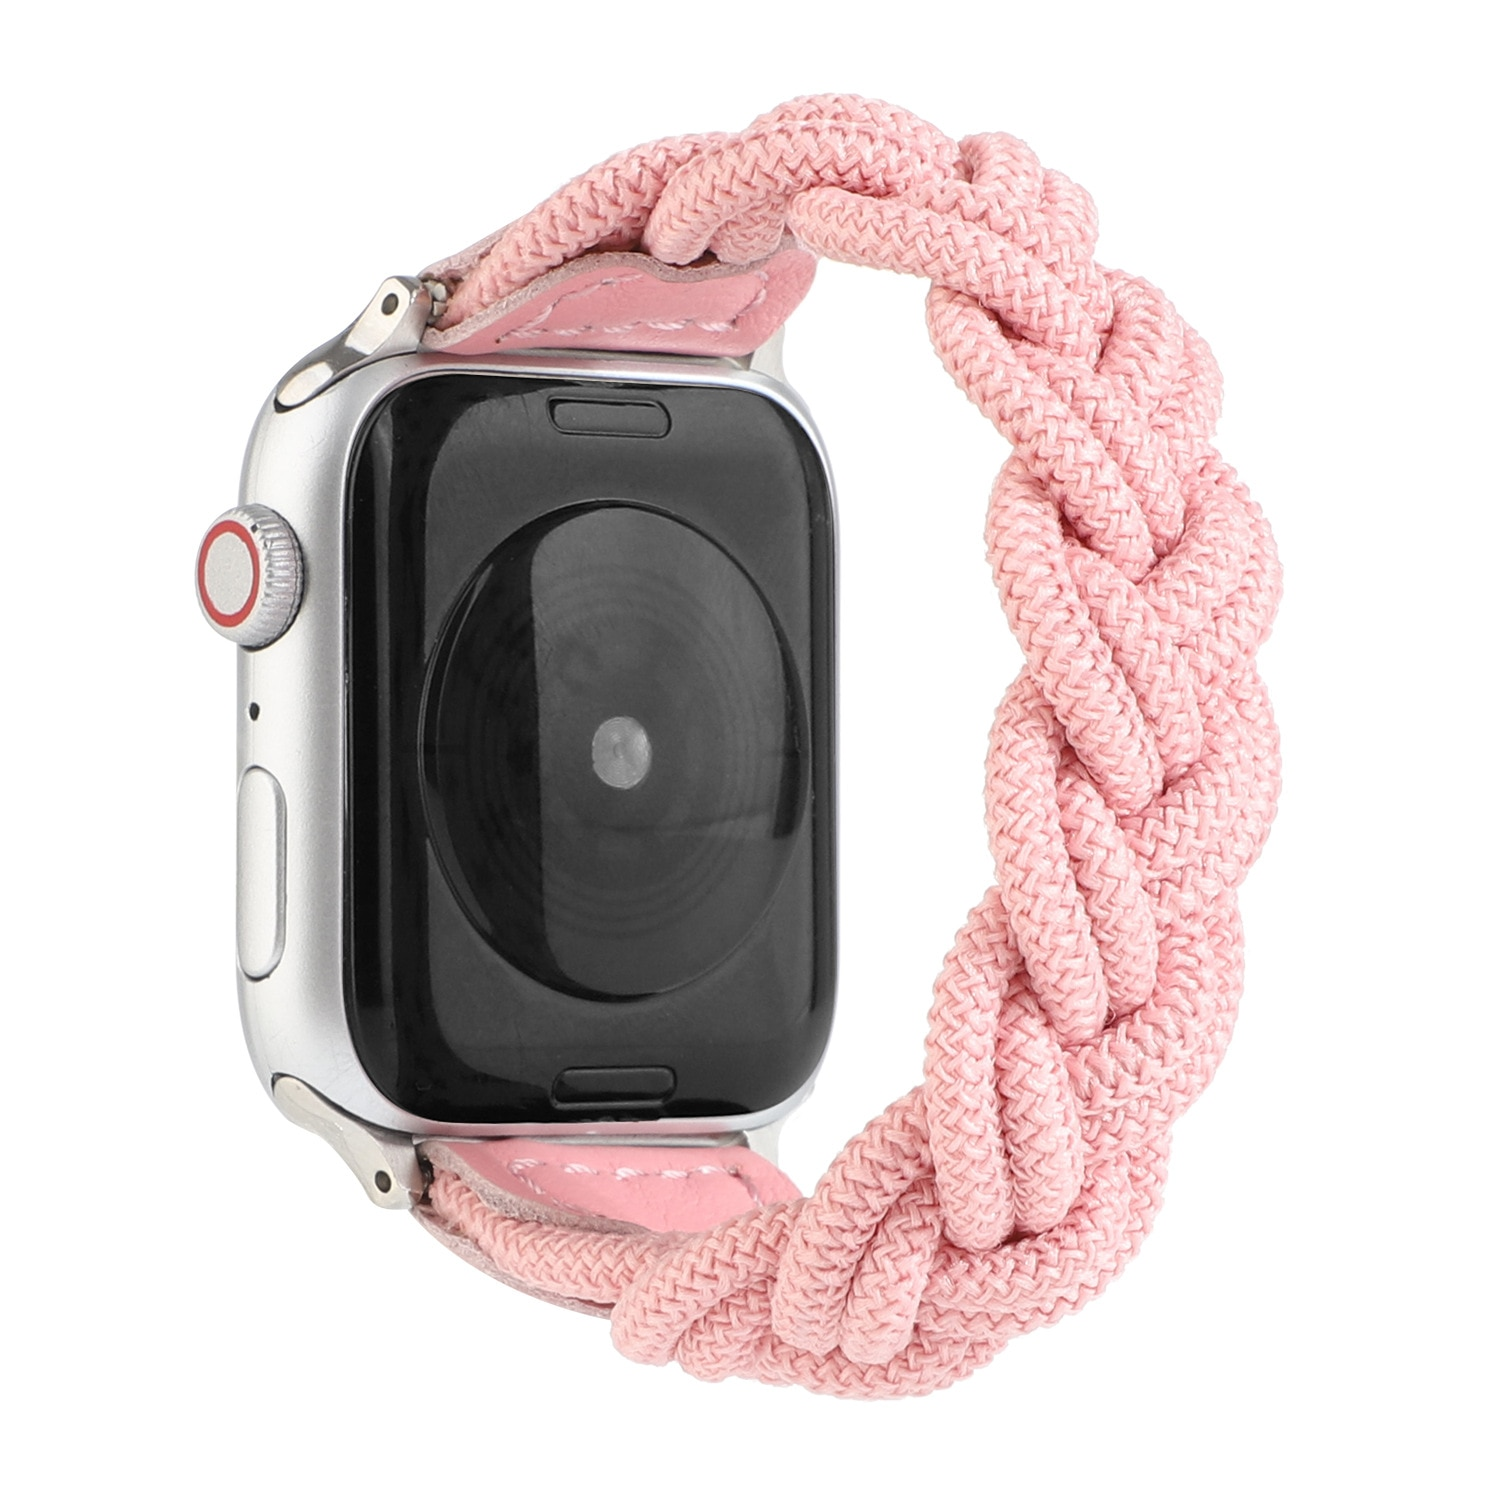 bumvor sport woven nylon band strap for apple watch 40 44mm 42 38mm wrist braclet belt fabric like for iwatch 4 3 2 1 edition Woven Strap for Apple Watch Band 44mm 40mm iWatch bands 38mm 42mm Belt Nylon Sport Loop bracelet watchband for series 6 5 4 3 SE